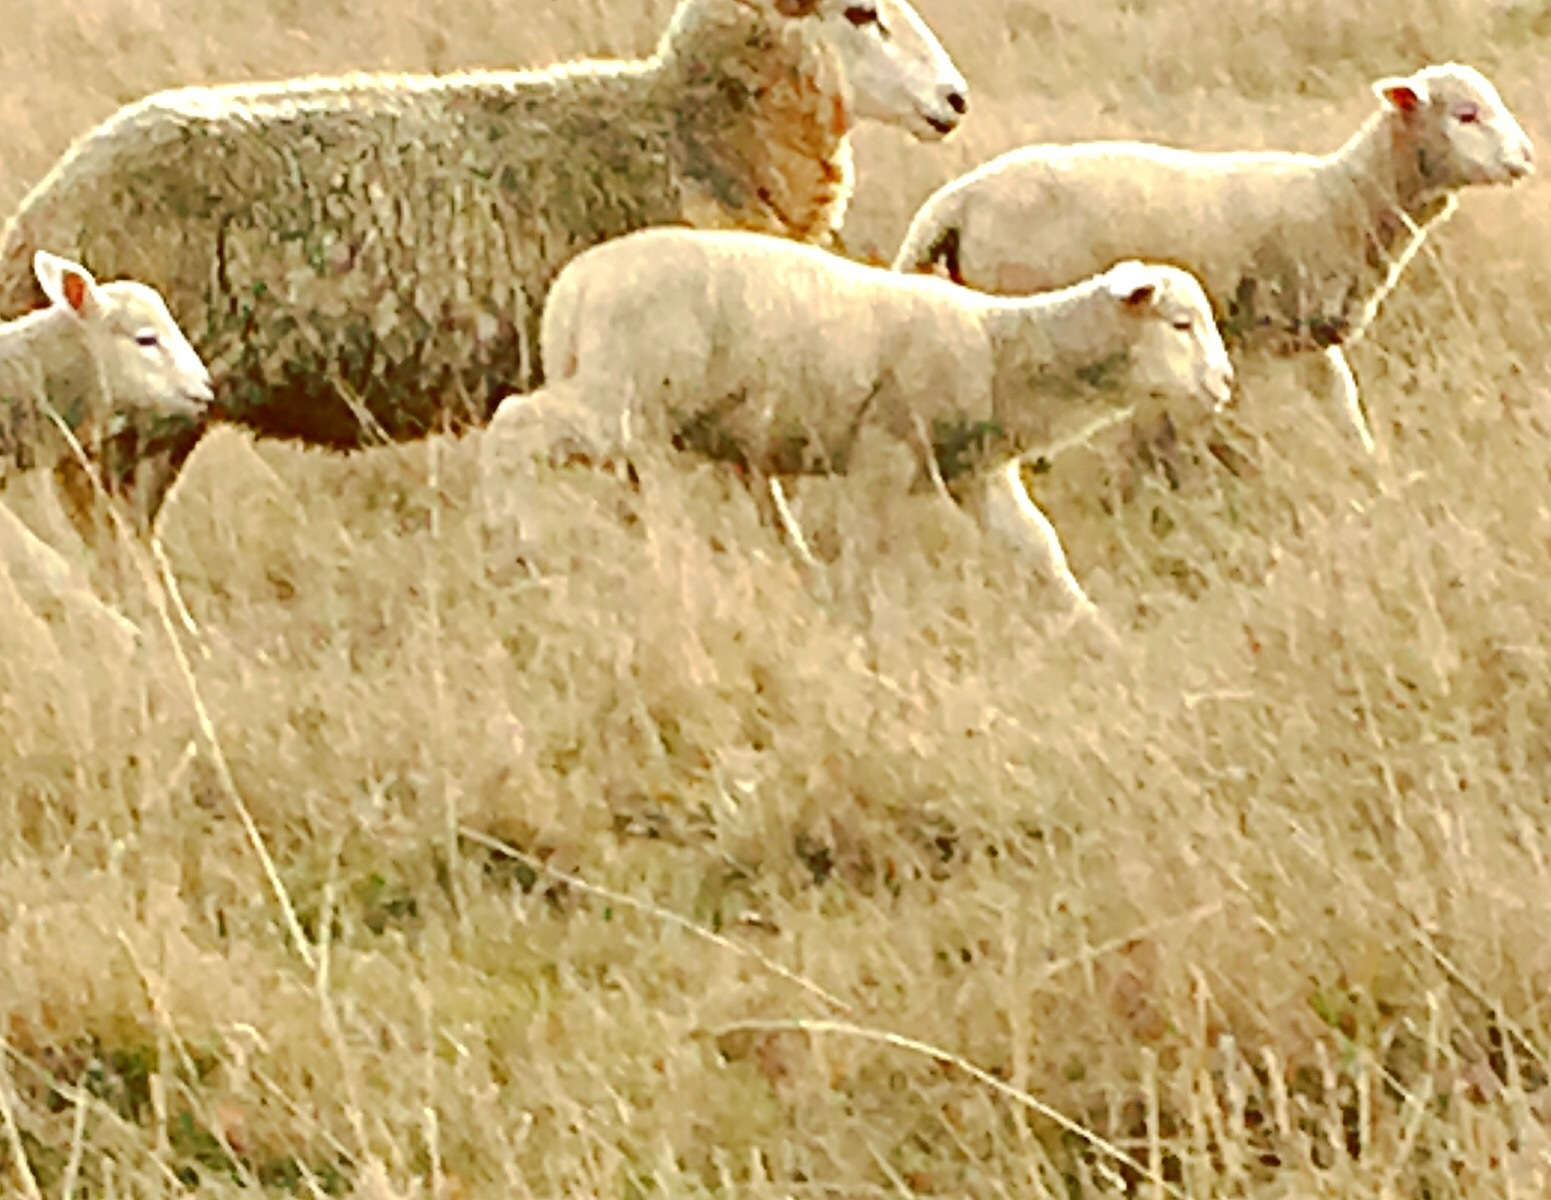 Sheep in the paddock blending in with the colour of the grass